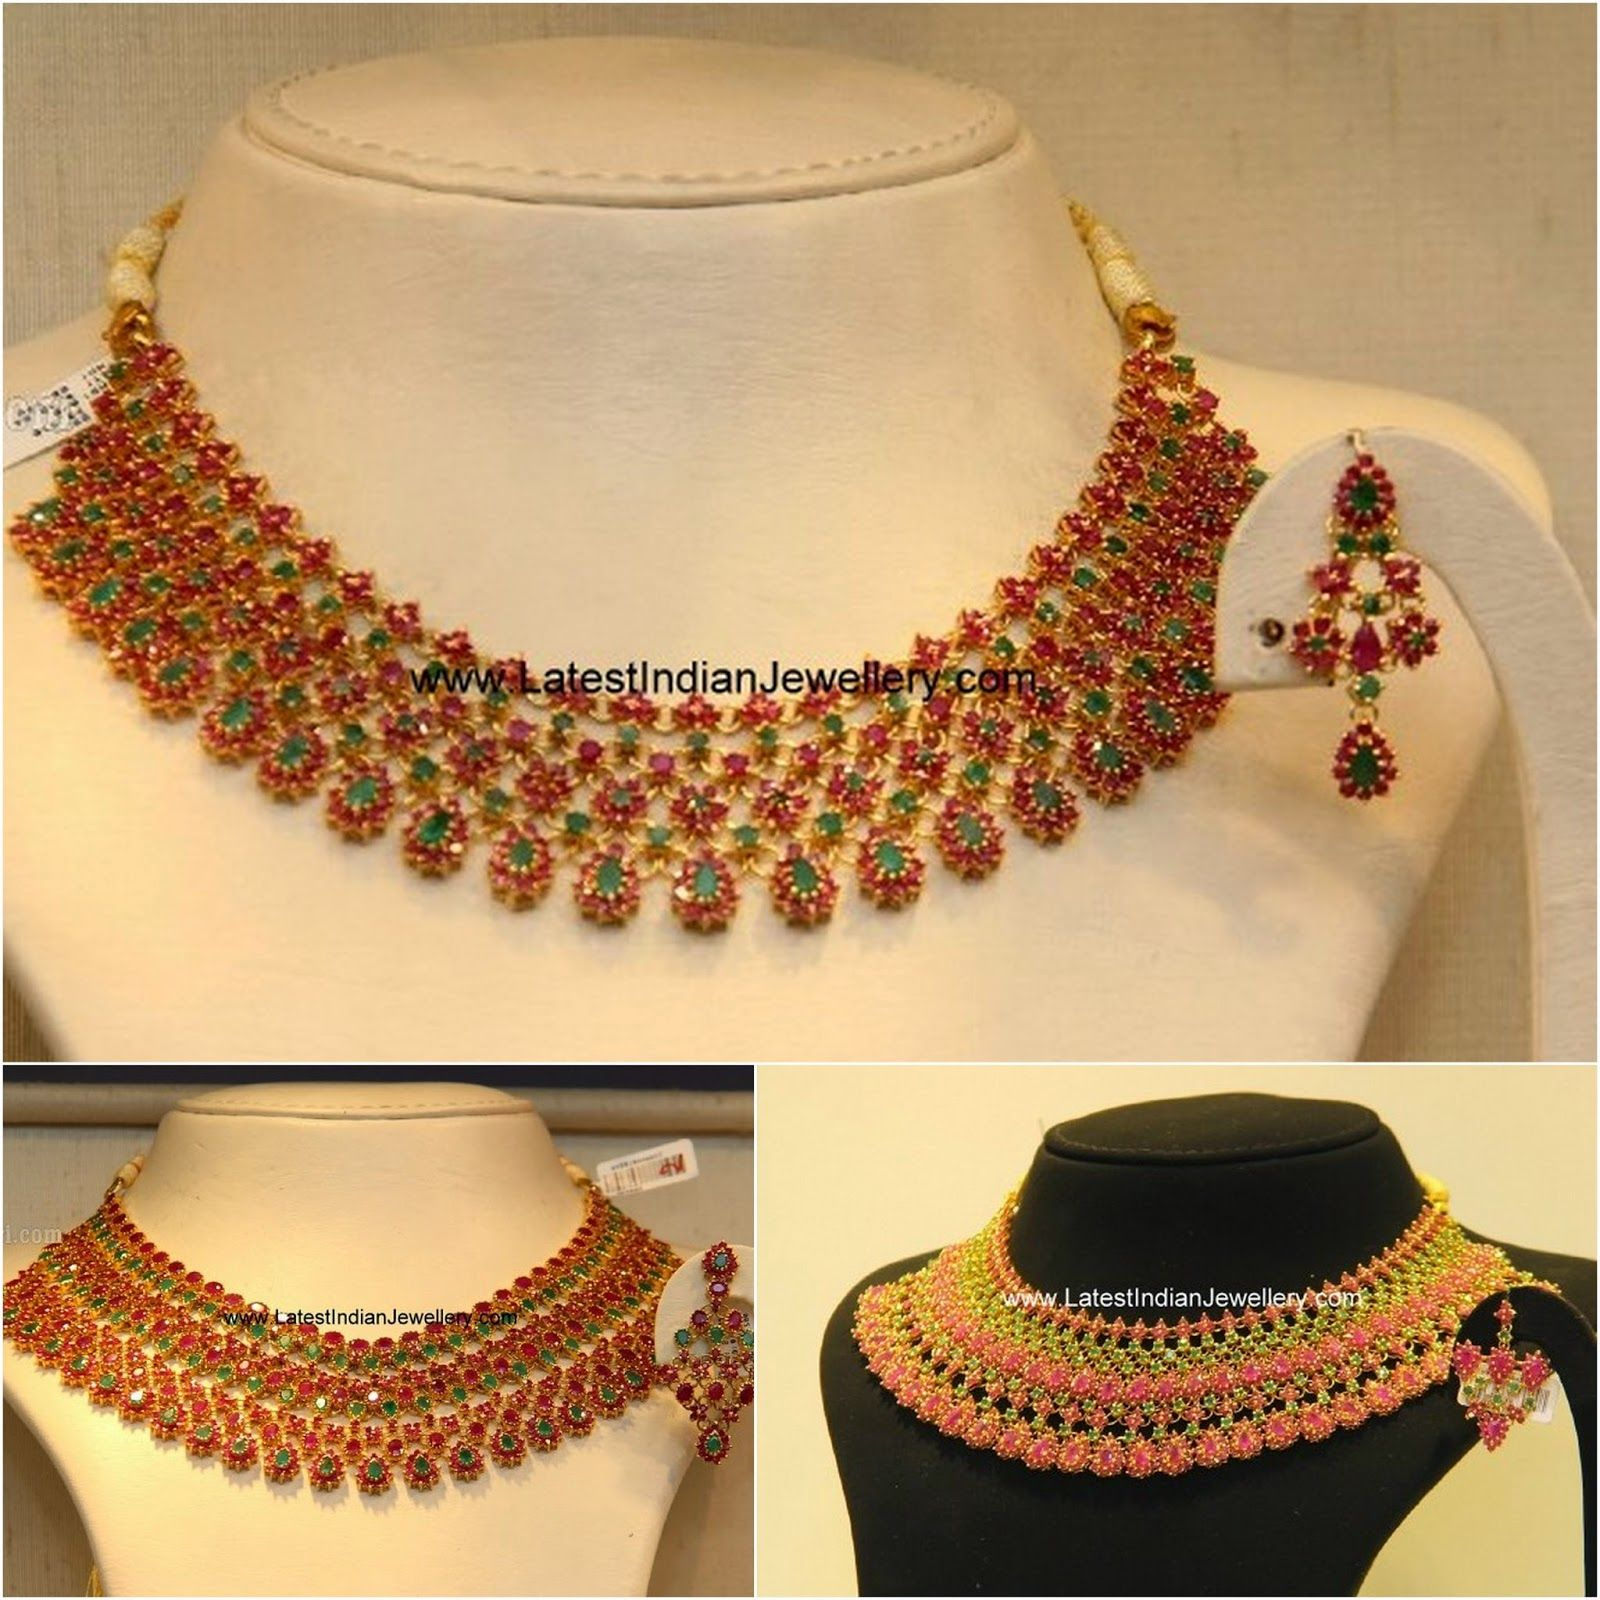 ruby-emerald-necklace-designs.jpg (1600×1600) | juelerie :P ...